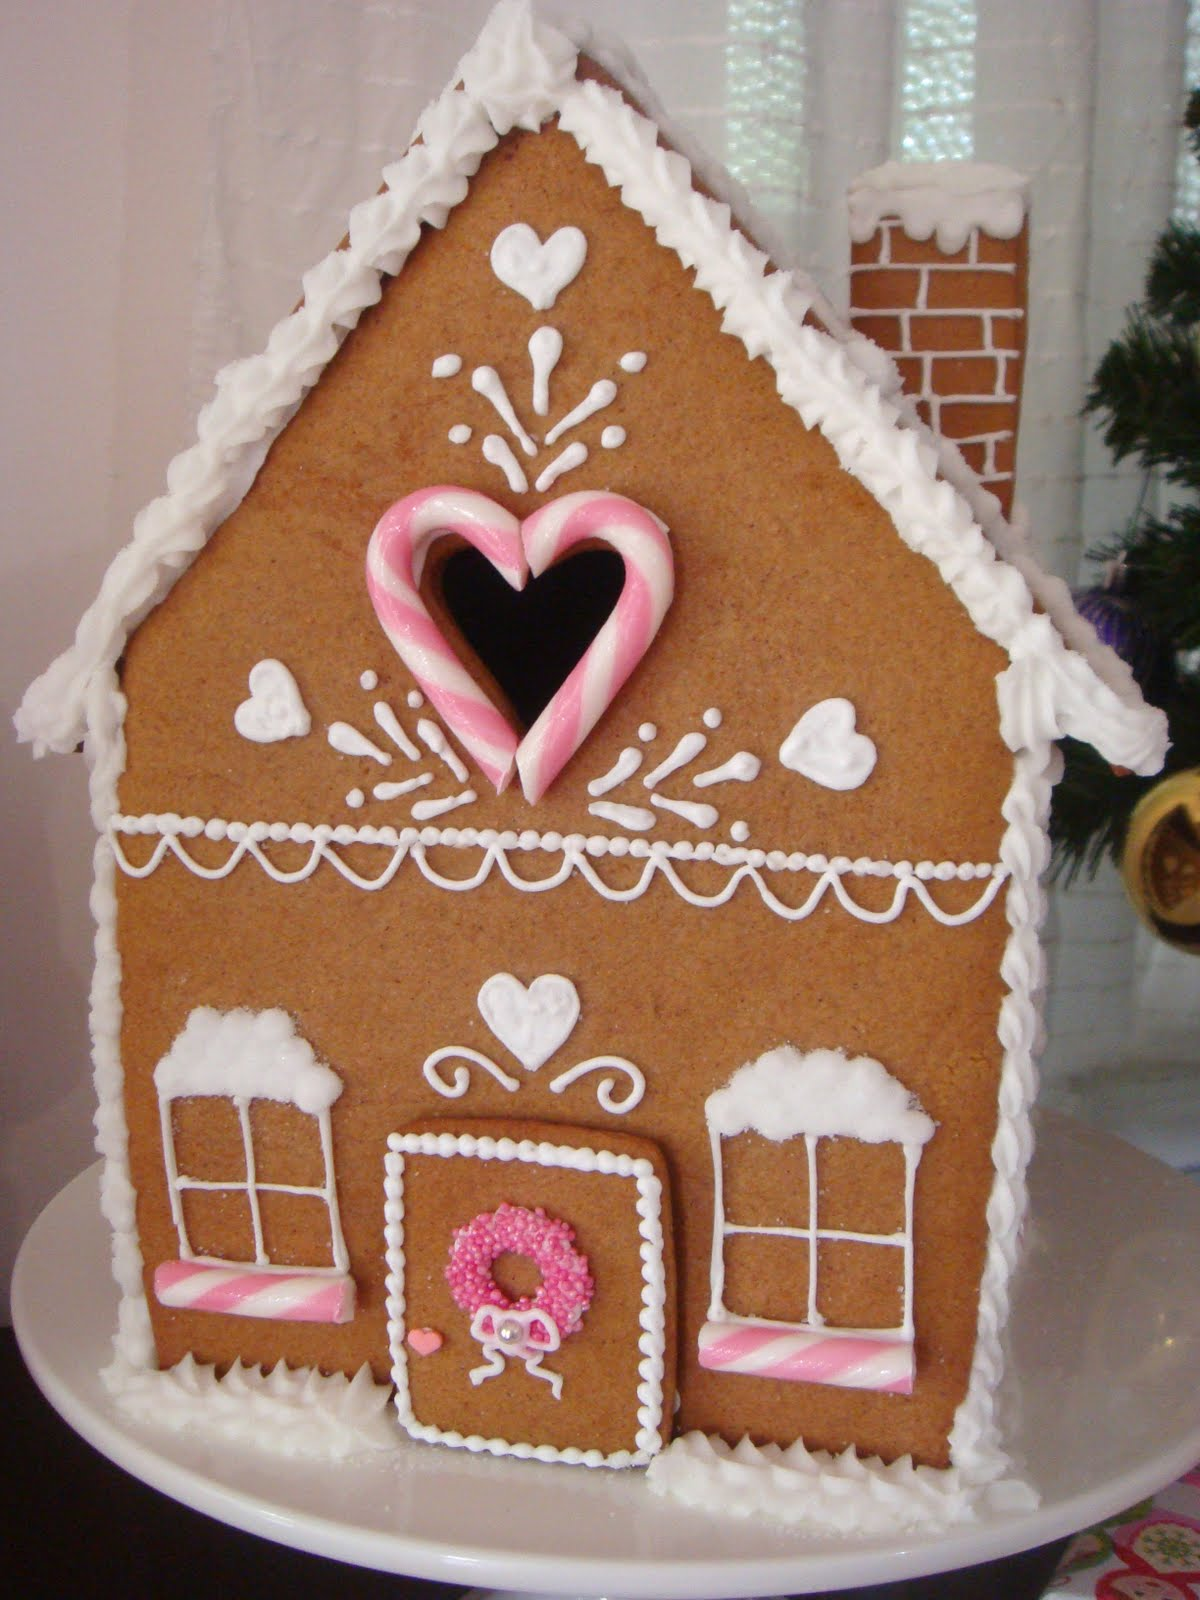 er hearts sugar: Gingerbread House (Part One- Making and Baking) on